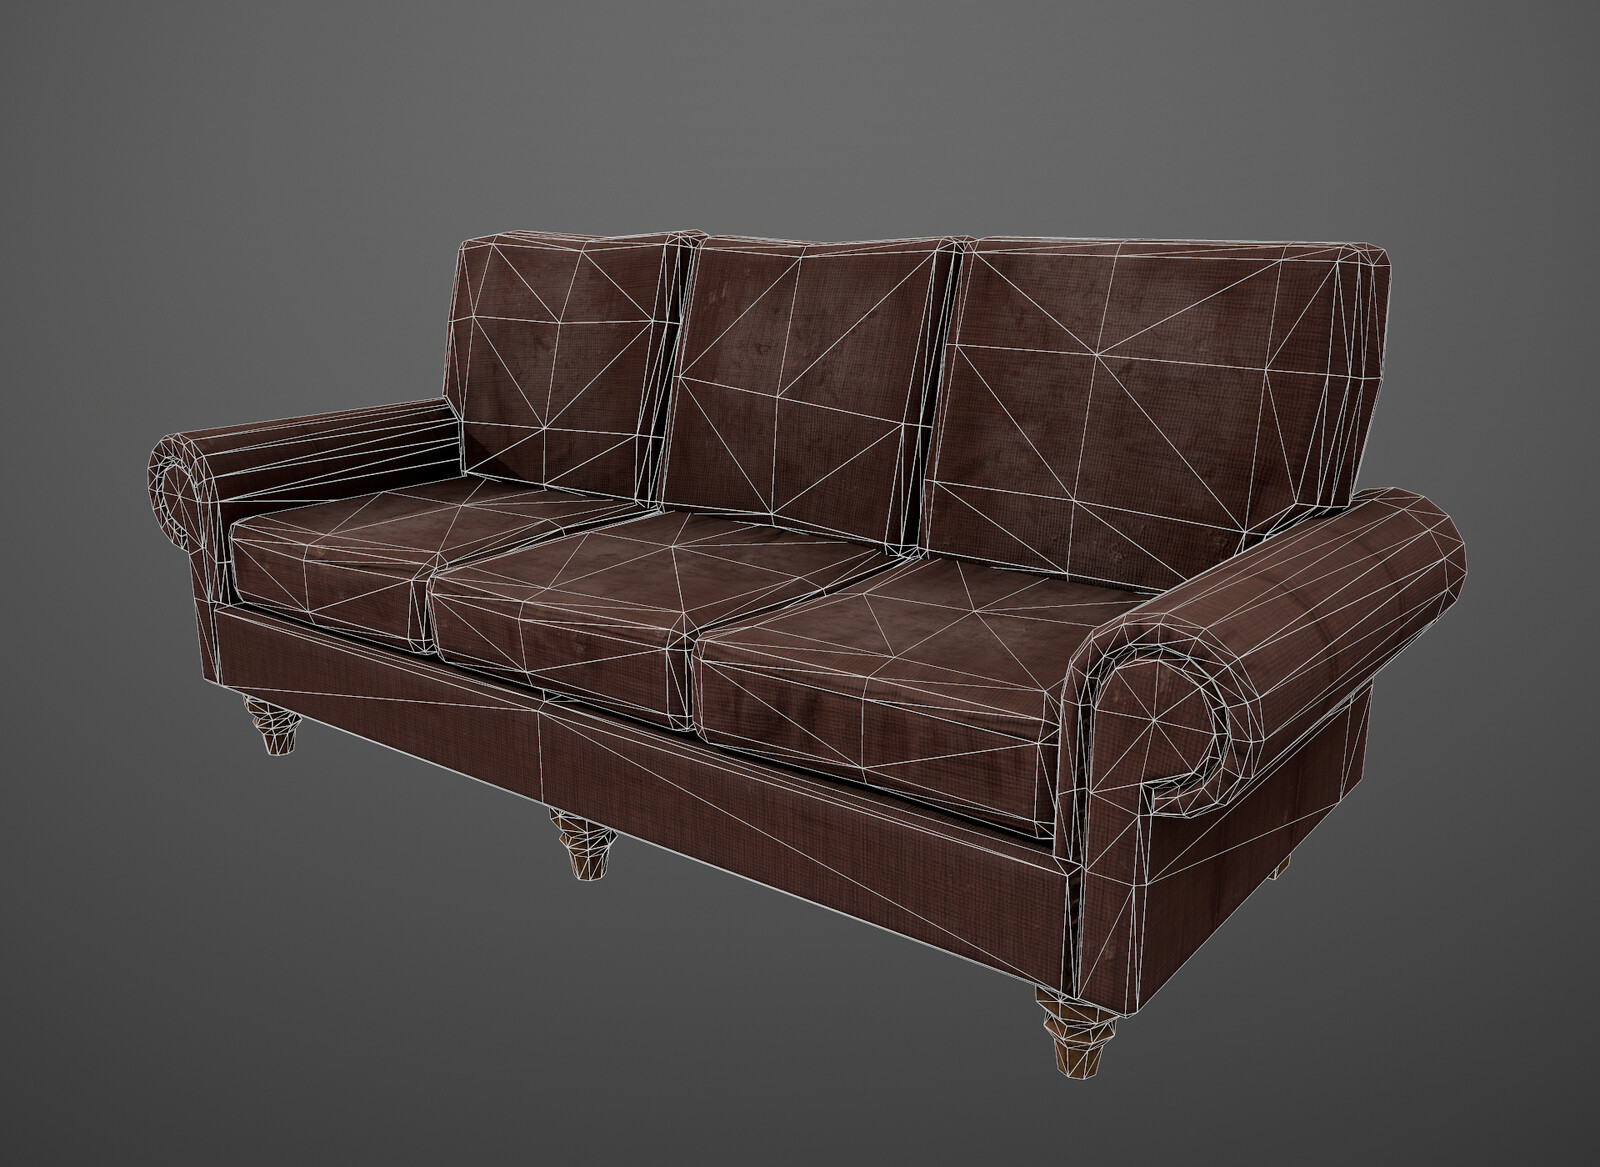 1746 tris for the sofa